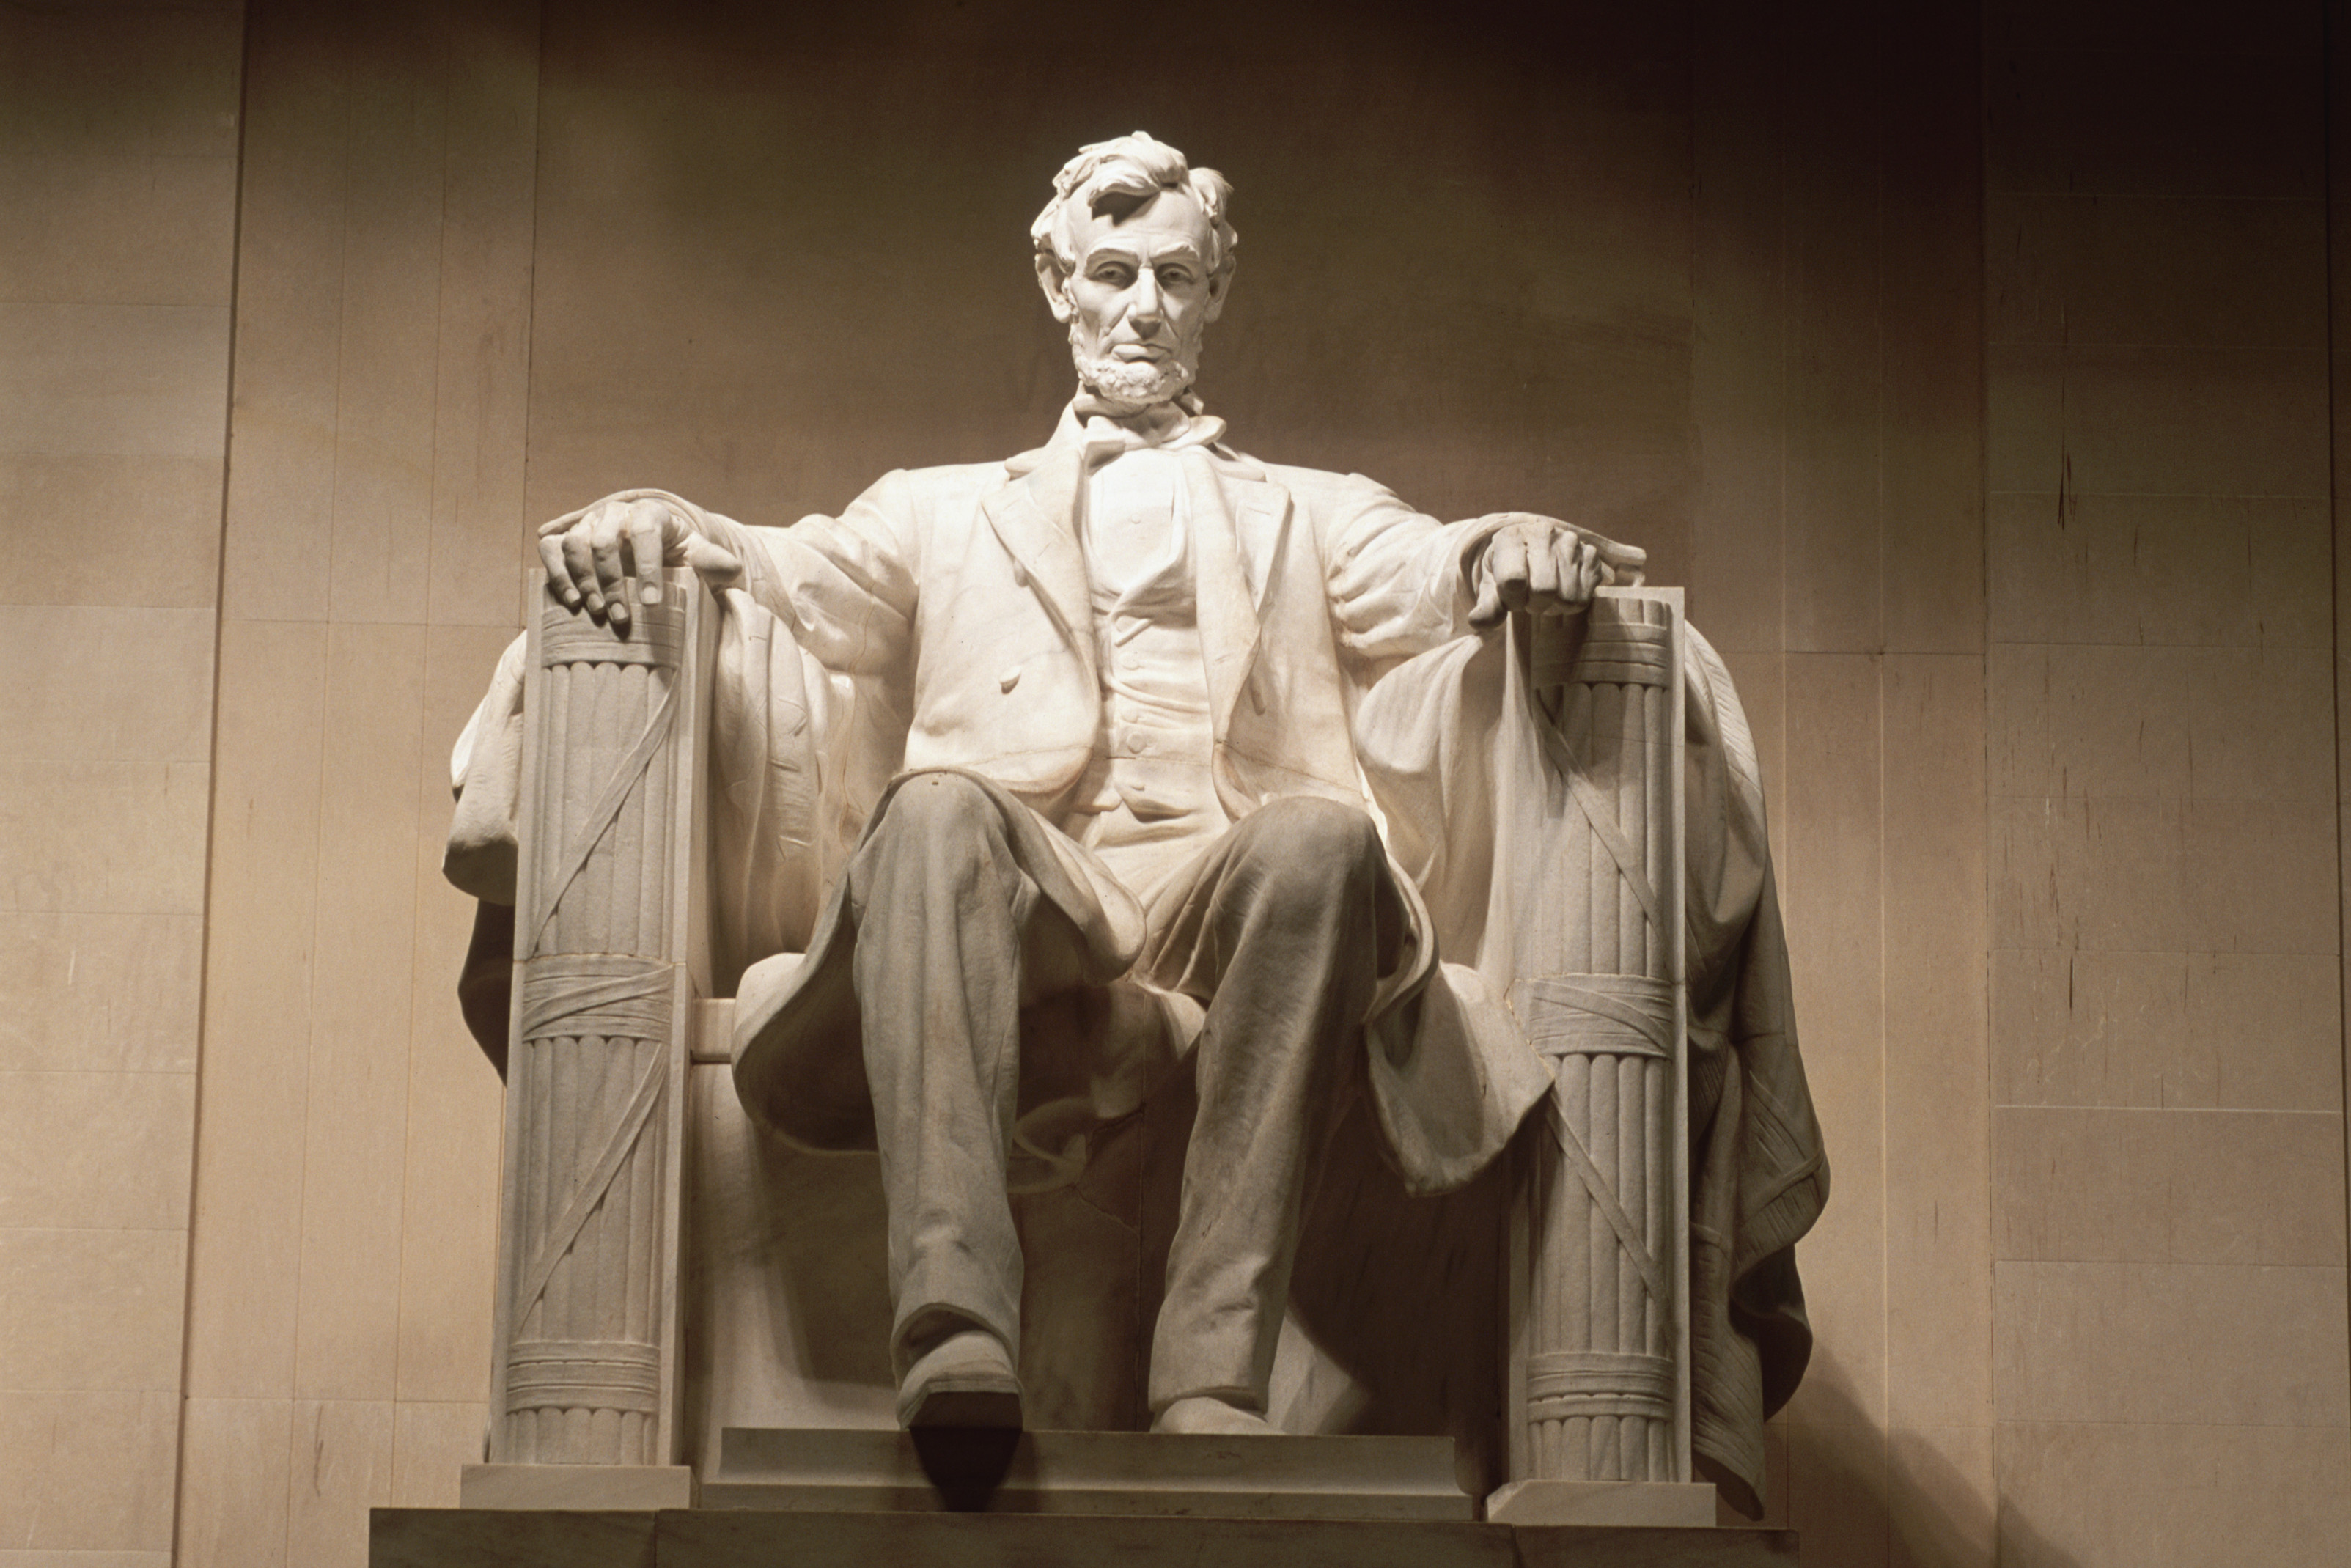 the leadership of president abraham lincoln during the civil war Abraham lincoln was the 16th president of the united states he is credited with preserving the union during the civil war and abolishing slavery within the confederacy.